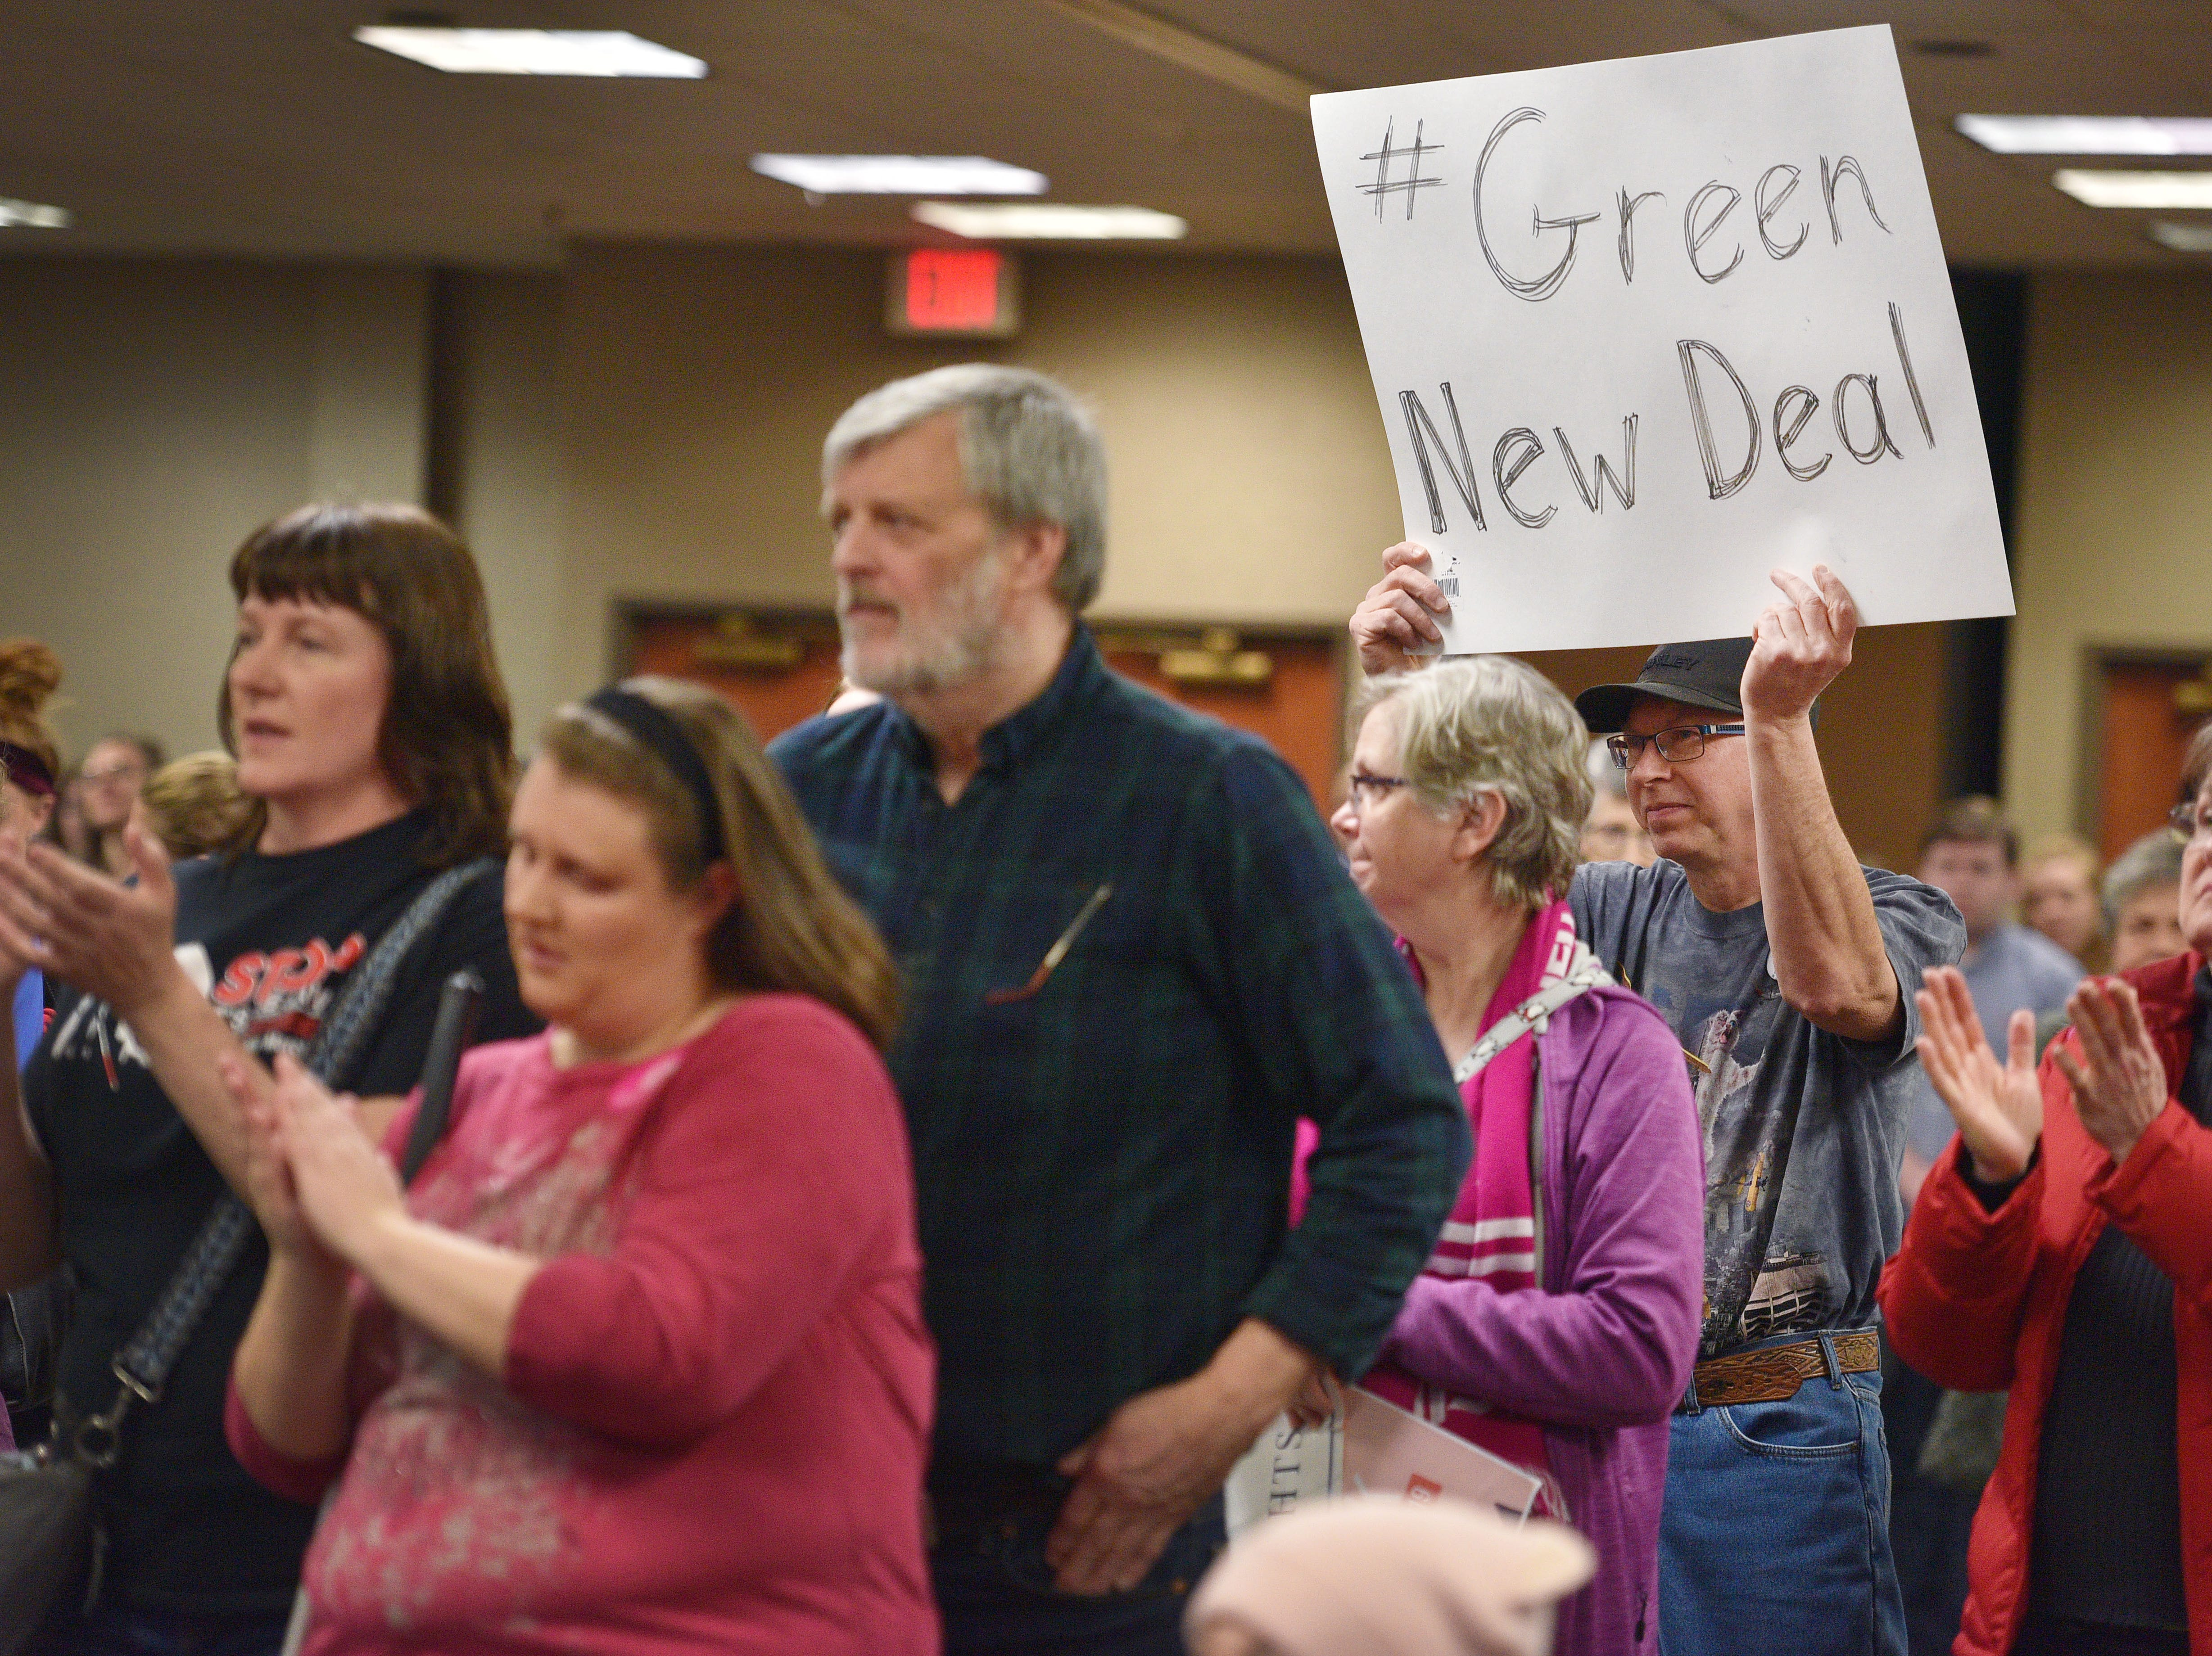 """A man holds a sign that reads """"#green new deal"""" during the Women's March Saturday, Jan. 19, at the Downtown Sioux Falls Holiday Inn-City Centre in Sioux Falls."""